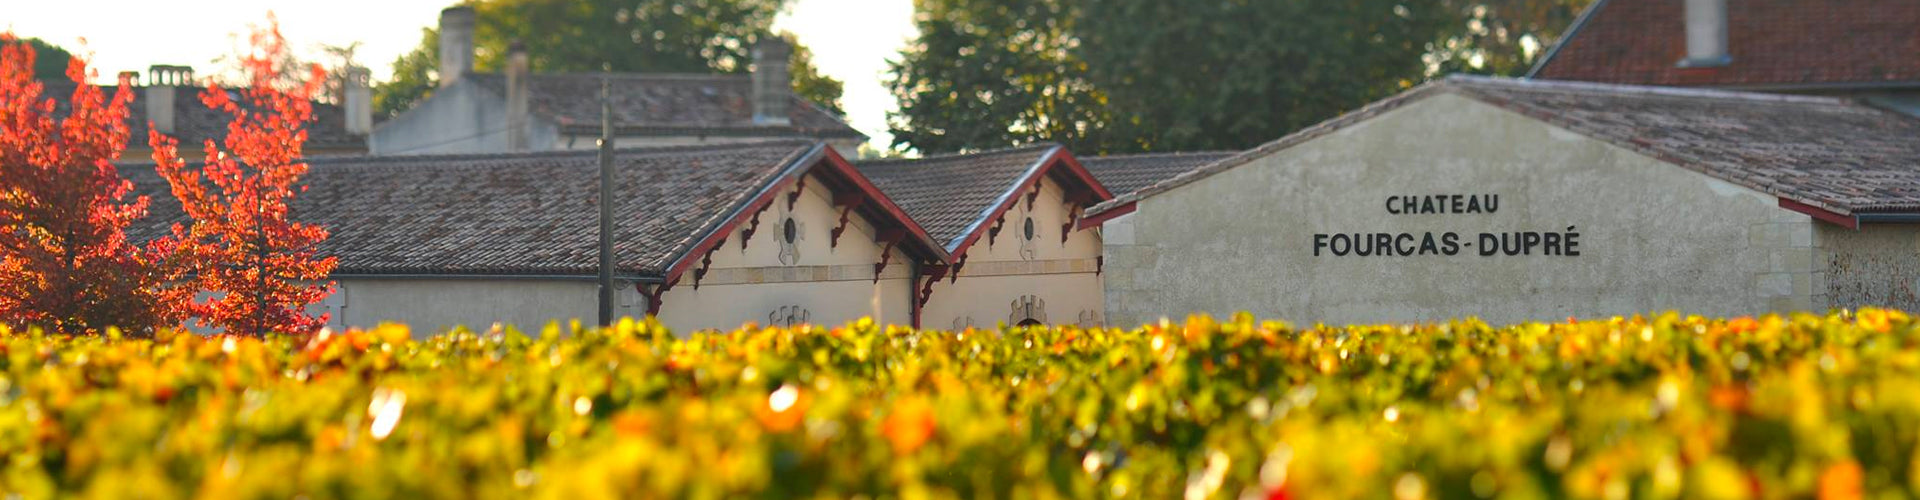 A view from the vineyard of the Château Fourcas Dupré Winery Buildings